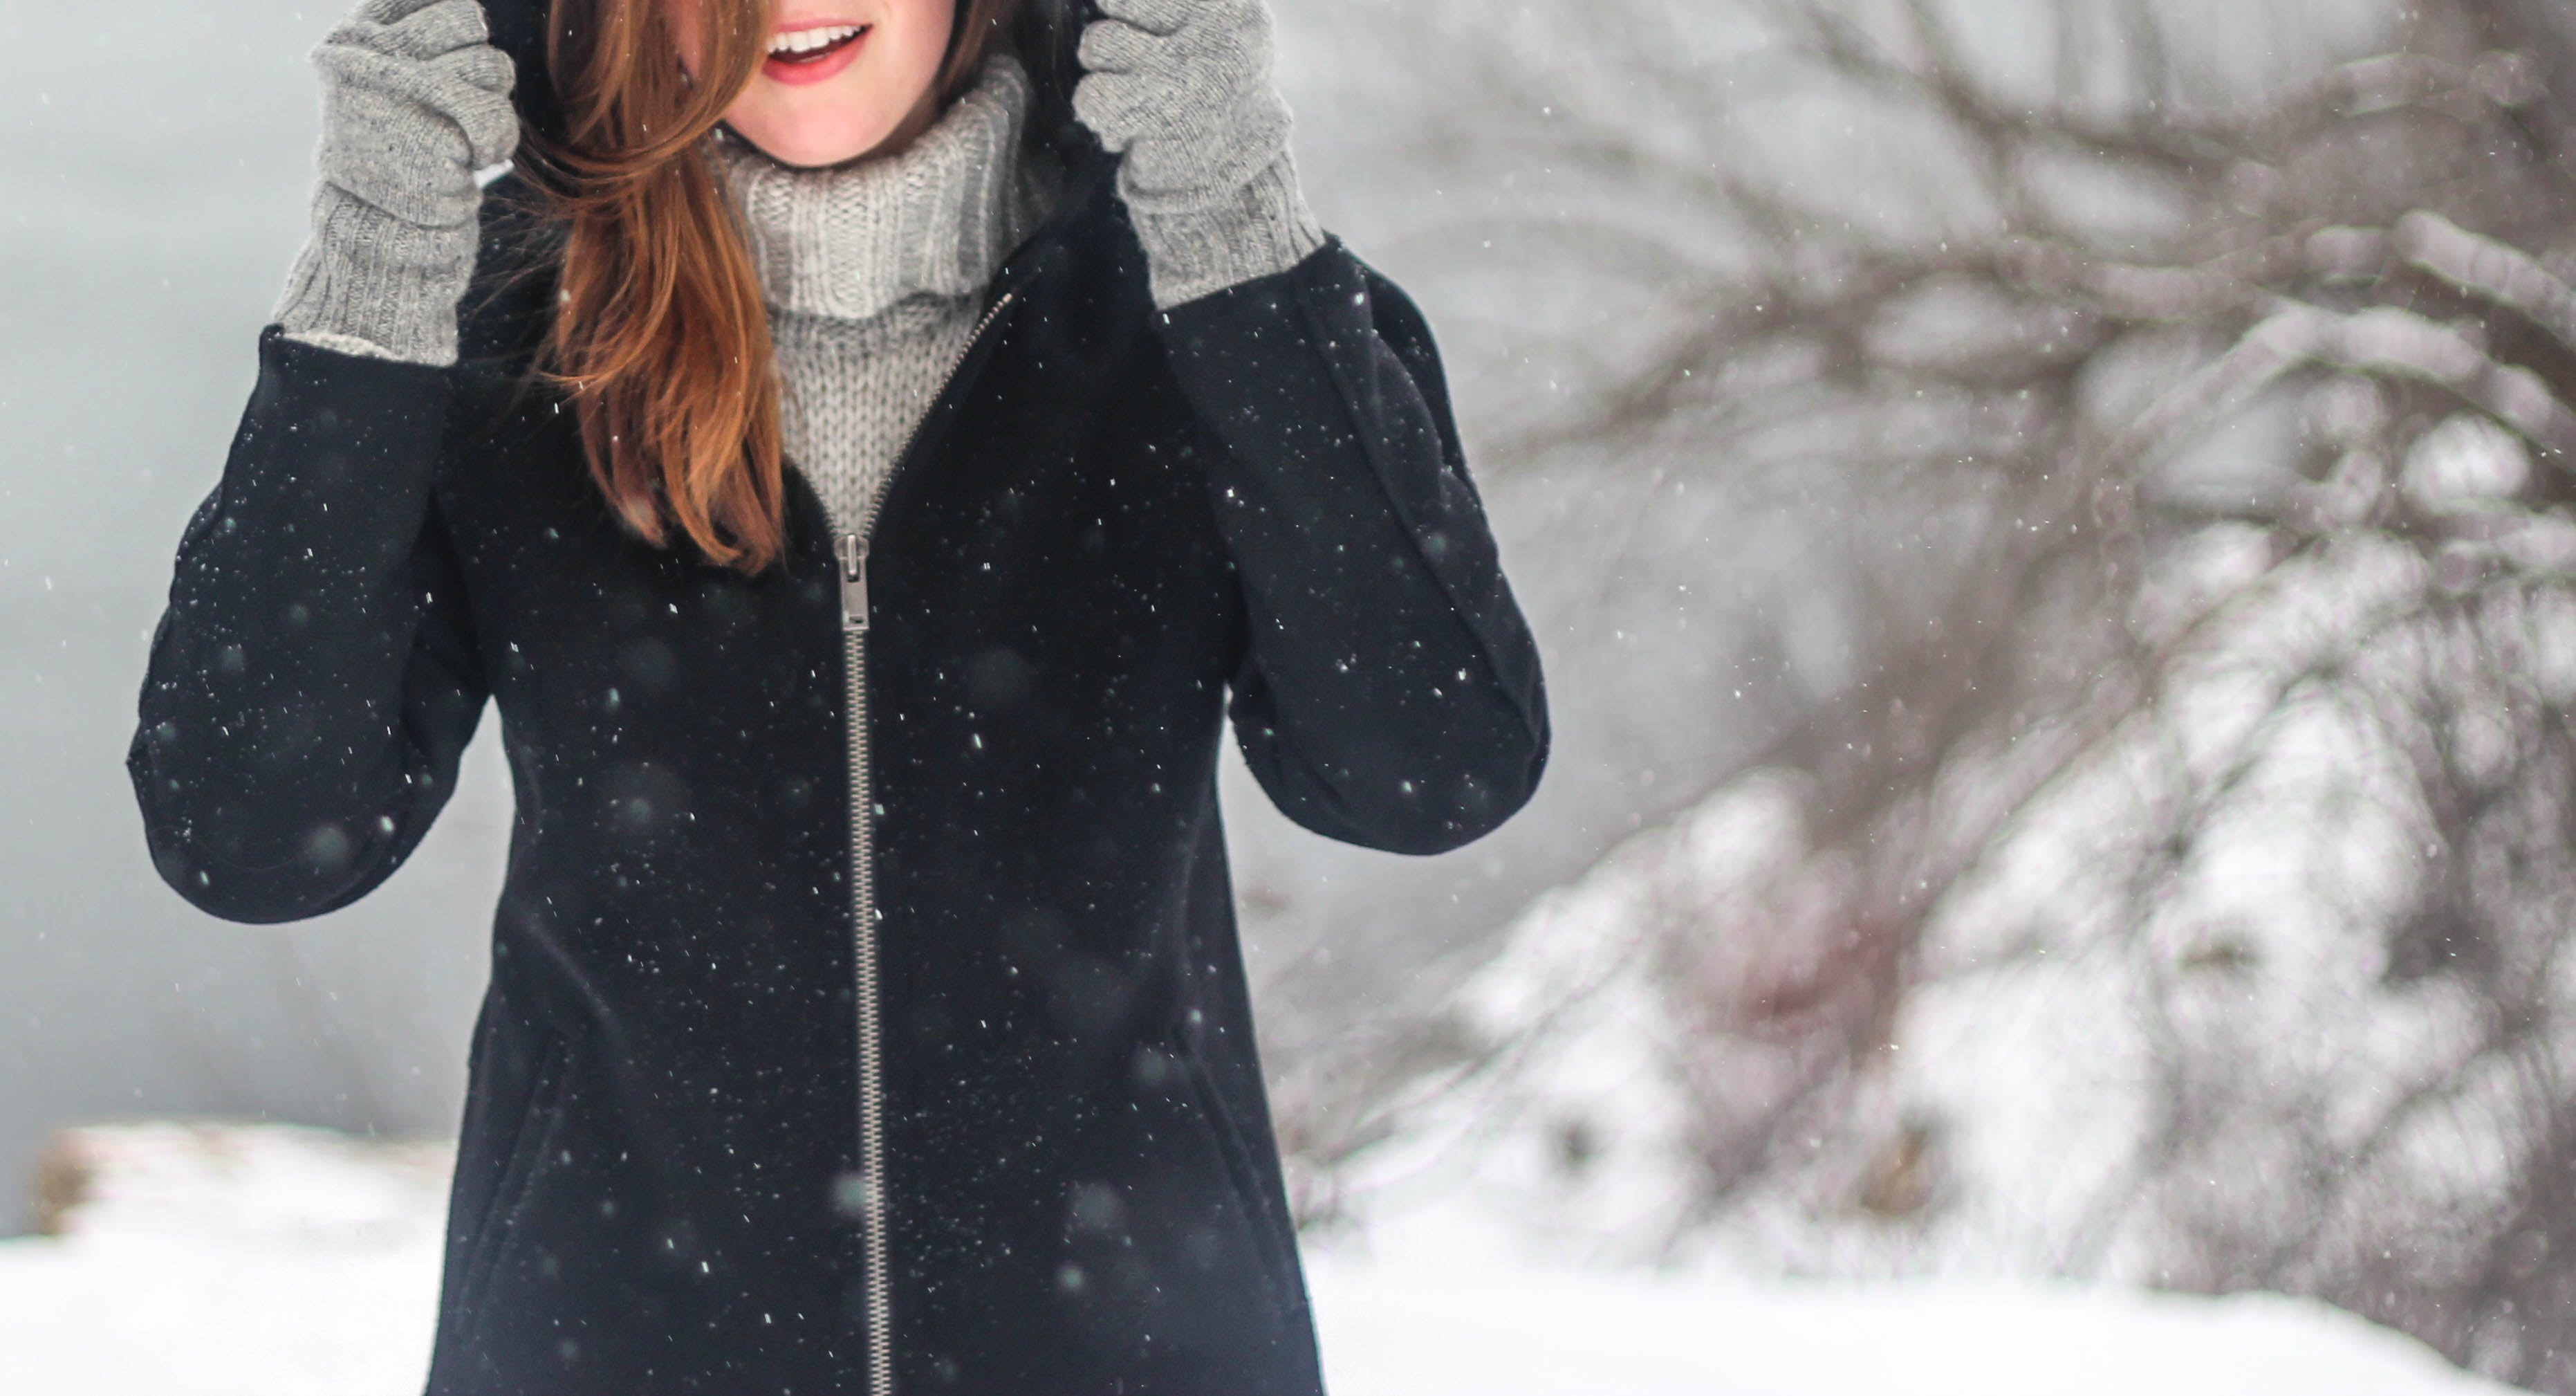 Free stock photo of cold, snow, woman, girl